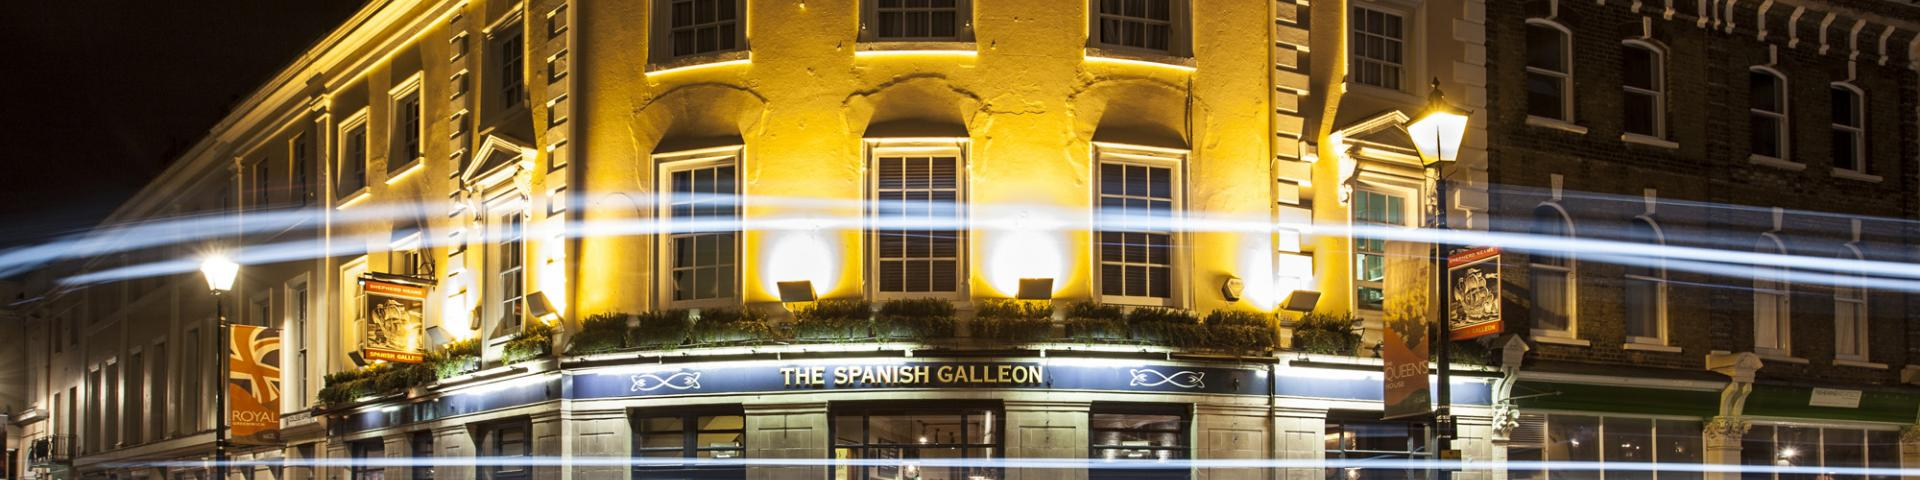 Spanish Galleon, Greenwich